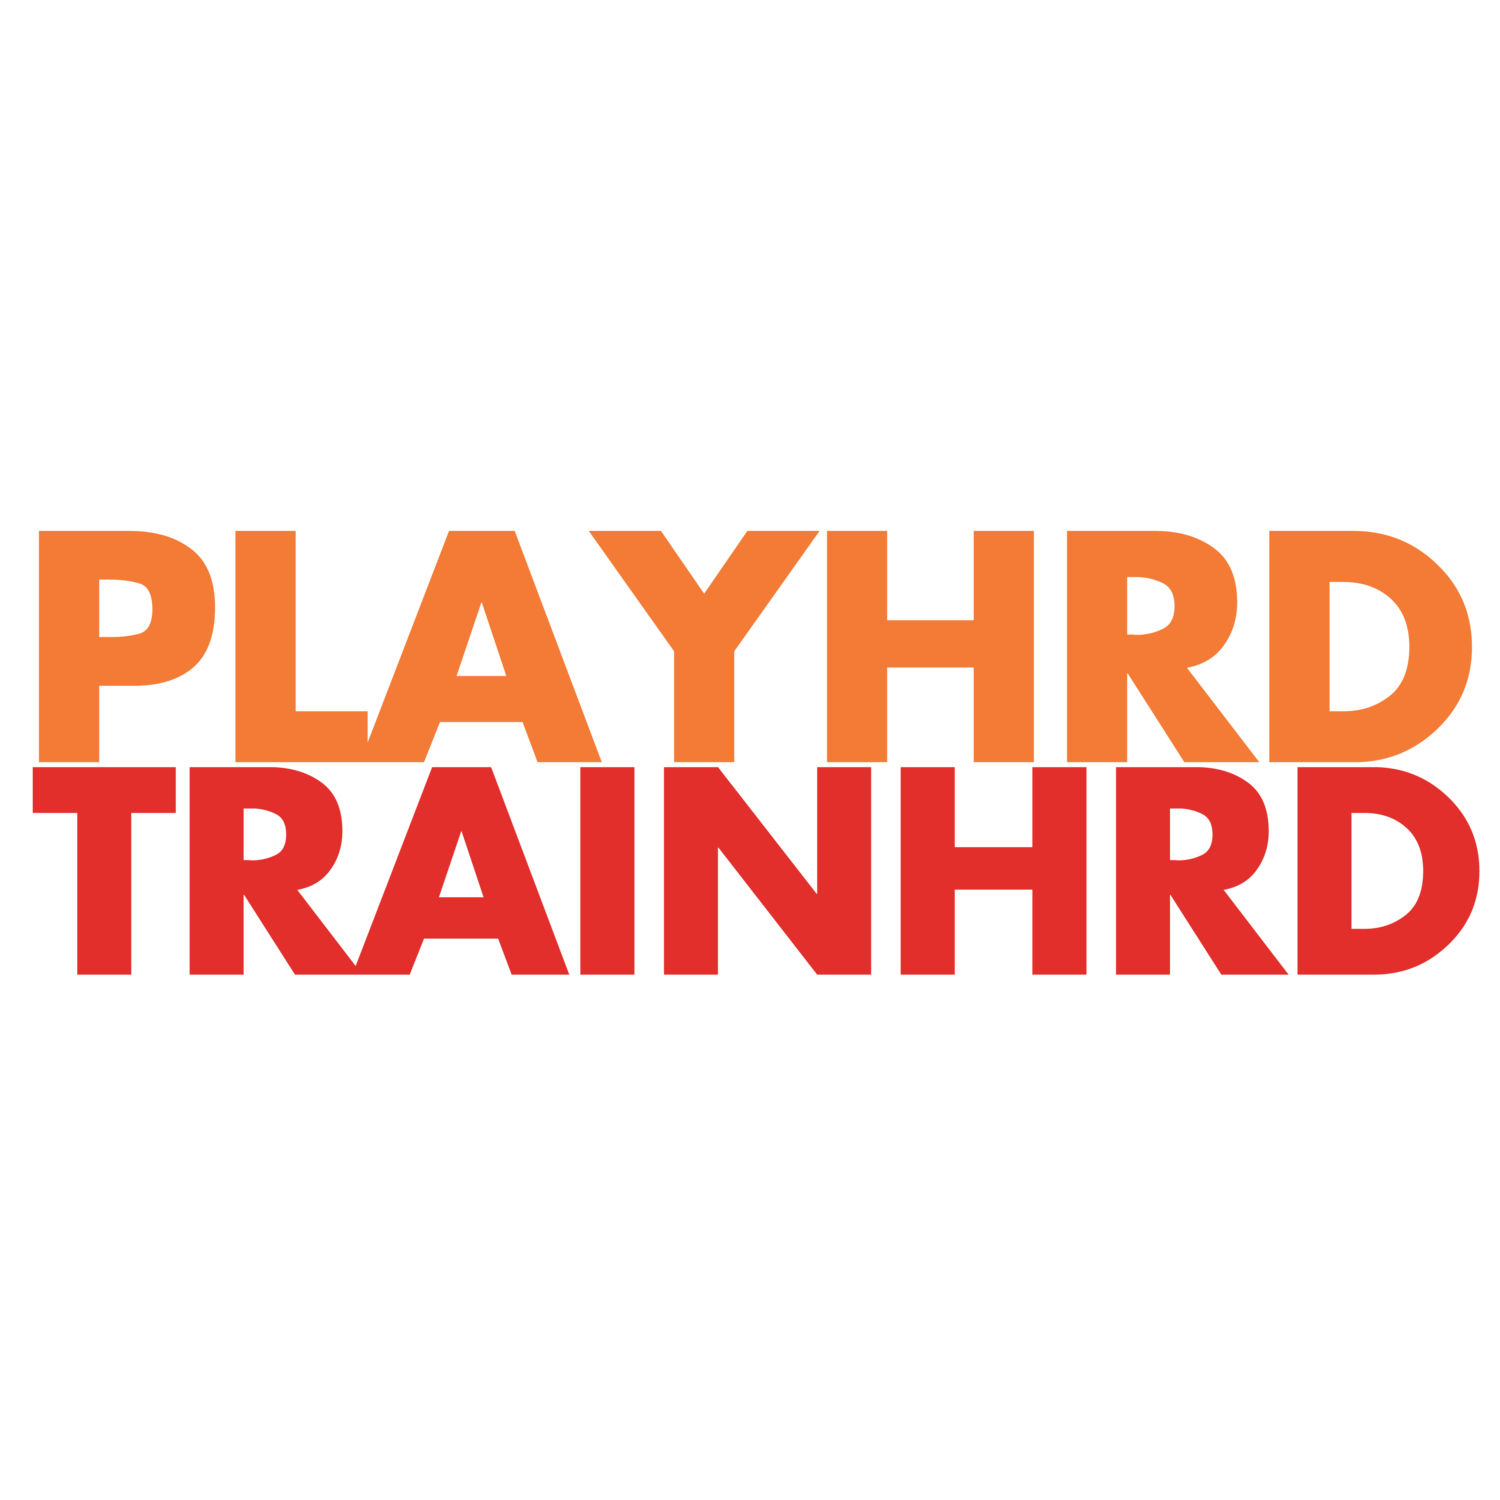 PlayHrd TrainHrd